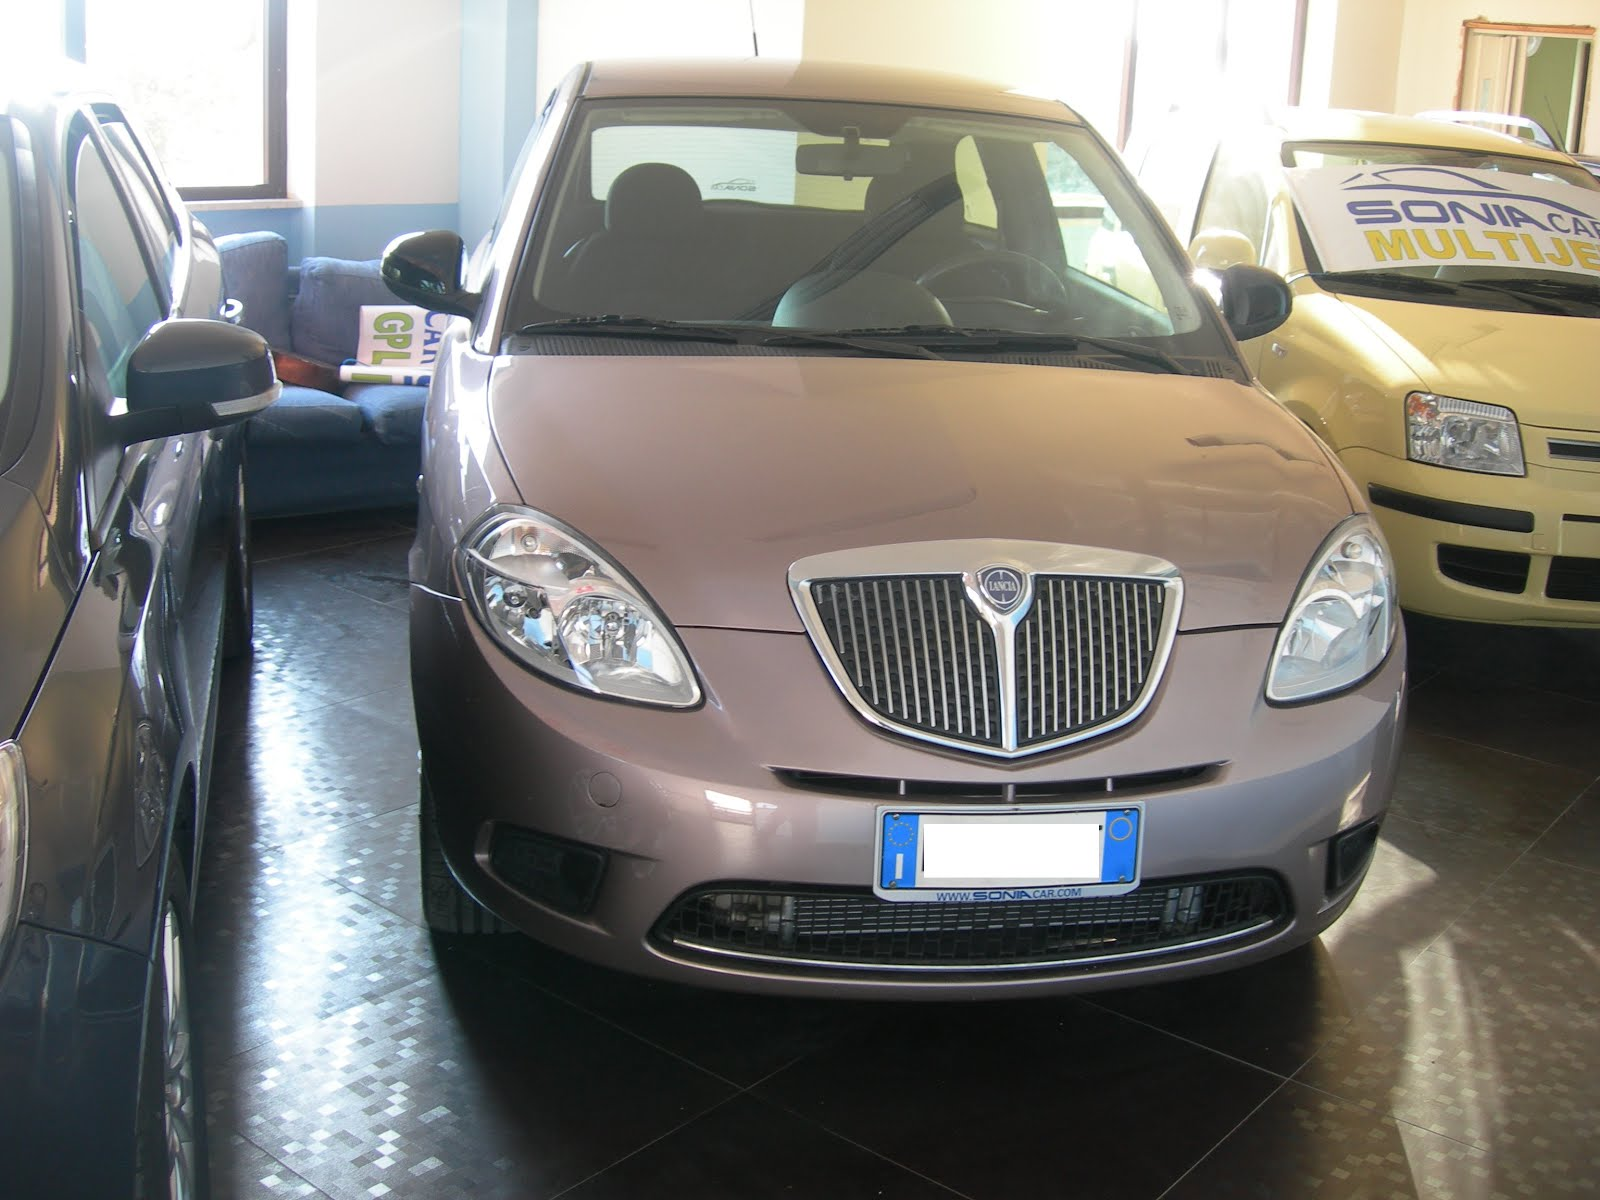 Lancia Ypsilon 1.2 DIVA Anno 2011 40.000km accessori full optional